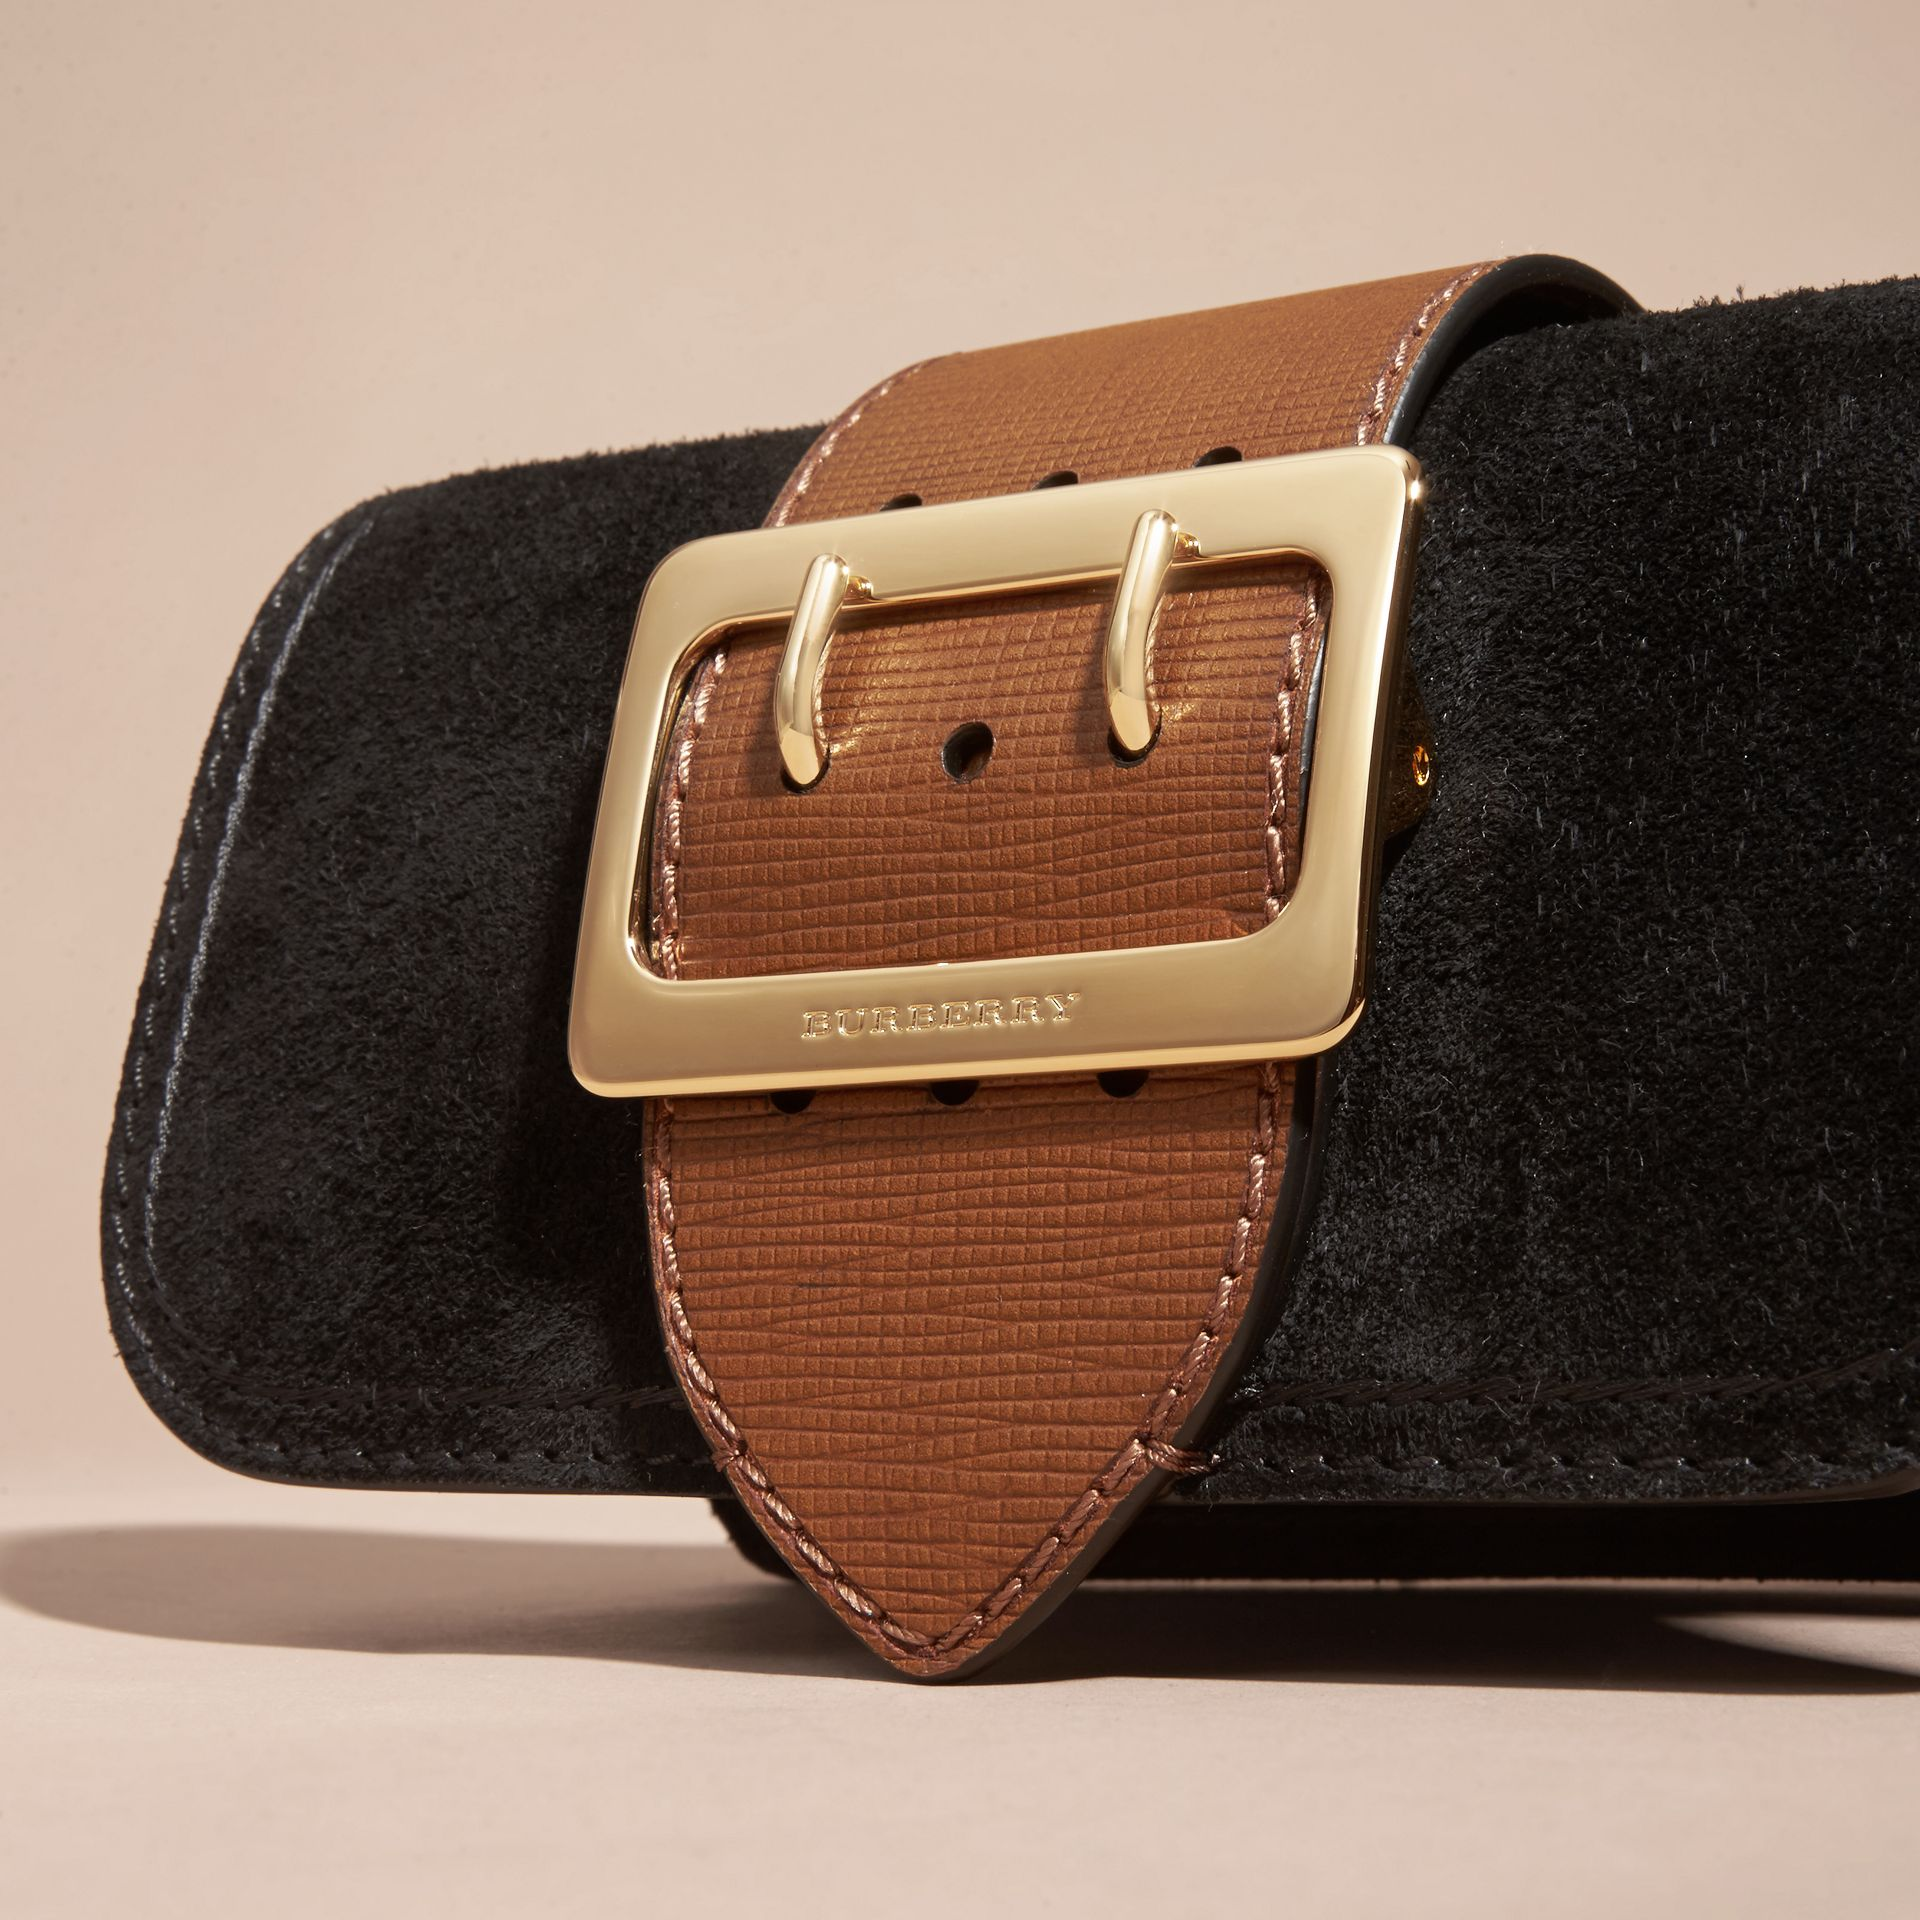 Black / tan The Small Buckle Bag in Suede with Topstitching Black / Tan - gallery image 2